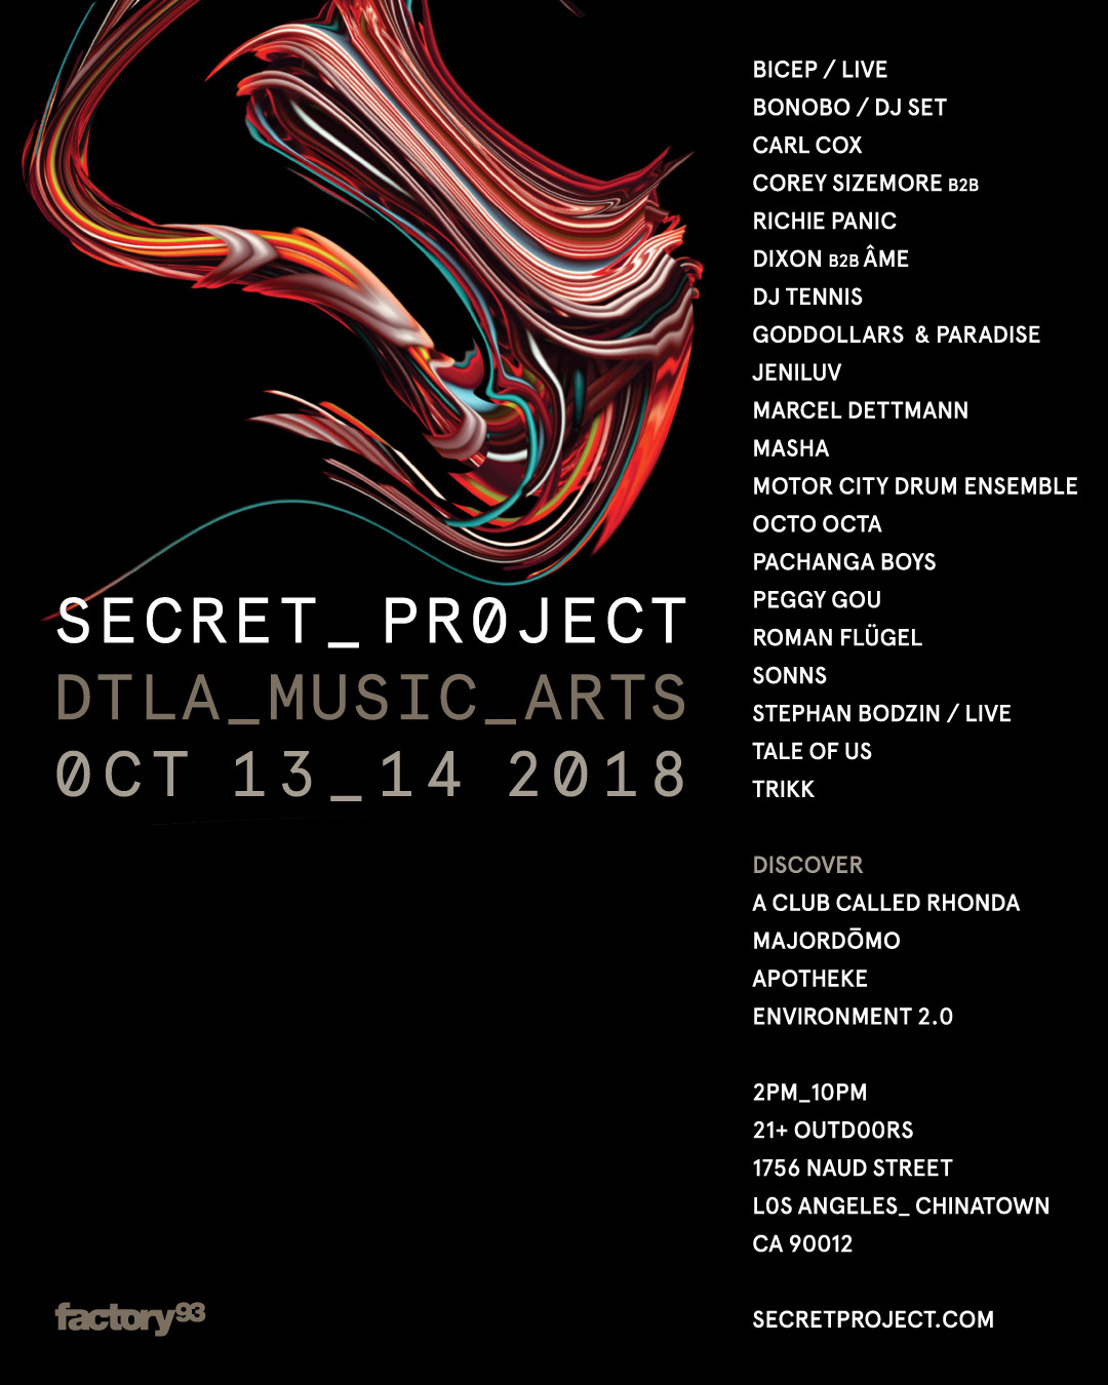 Secret Project will bring Bonobo, Carl Cox and more to new Los Angeles block partyDownload 1